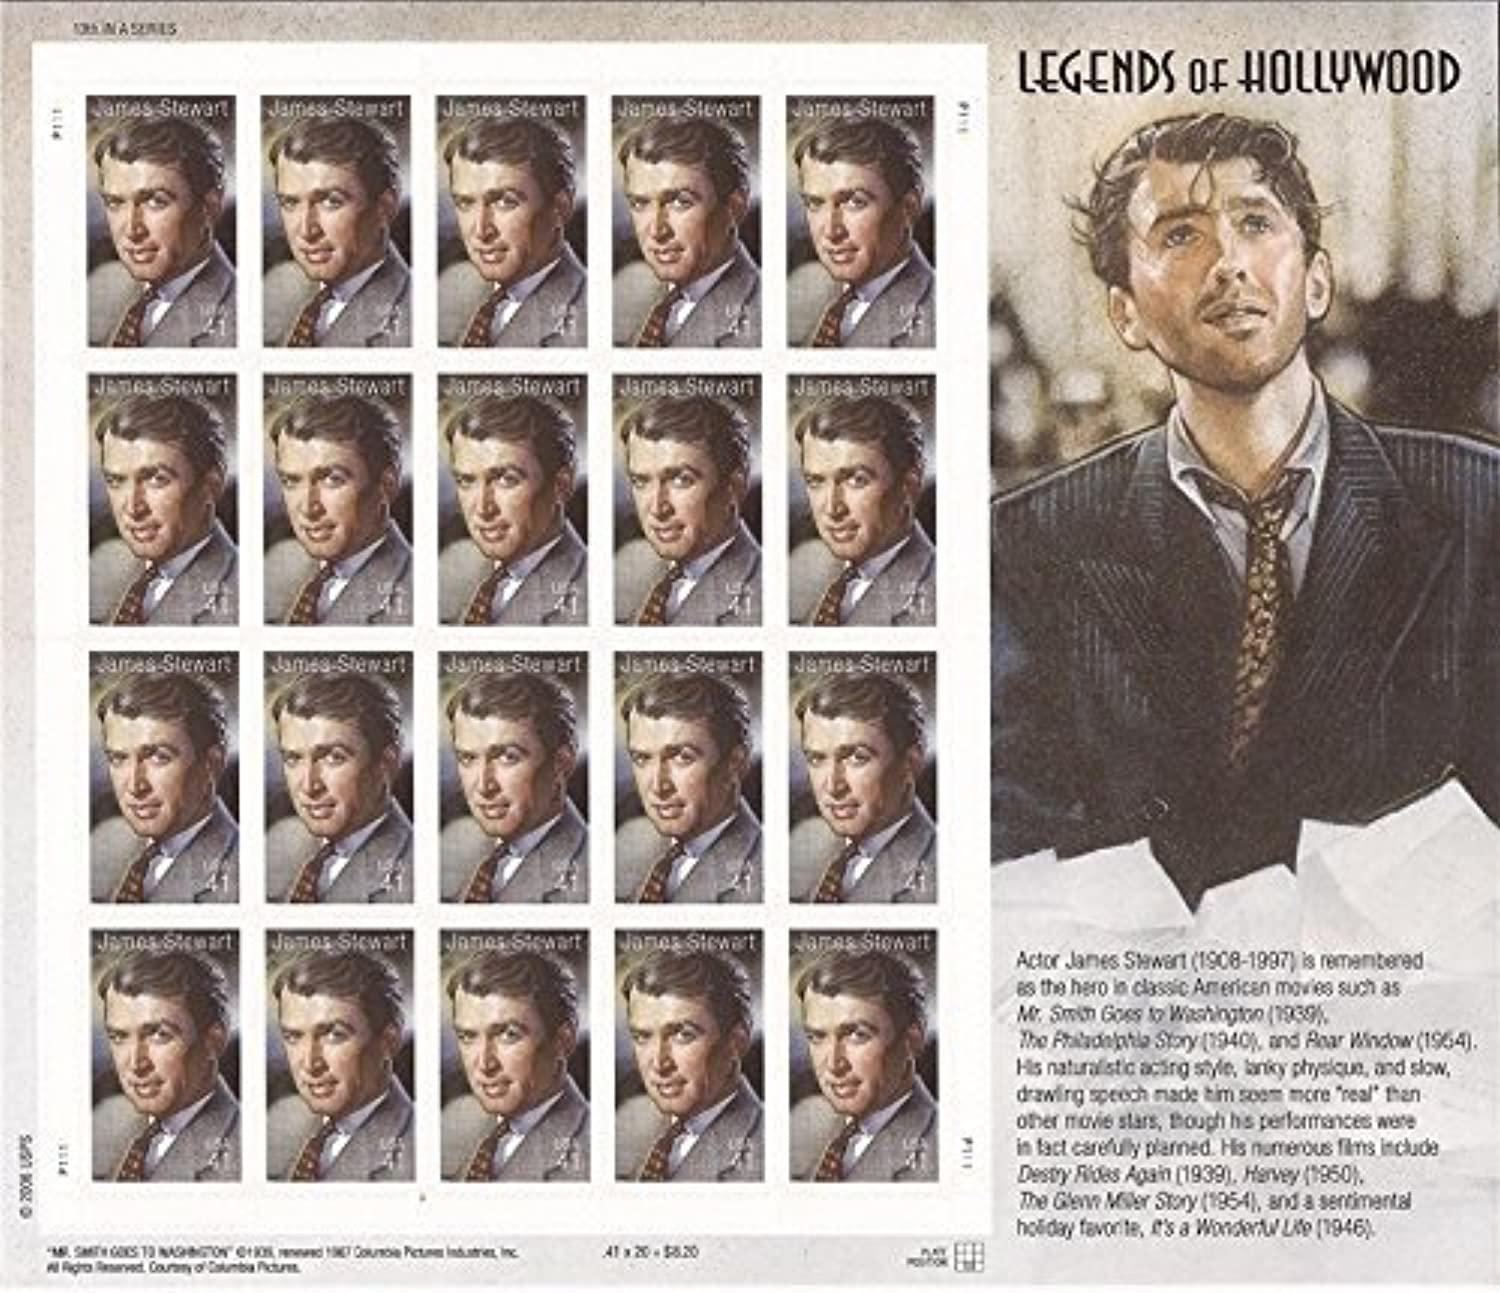 James (Jimmy) Stewart  Legends of Hollywood, Full Sheet of 20 x 41 Cent Stamps, USA 2007, Scott 4197 by USPS